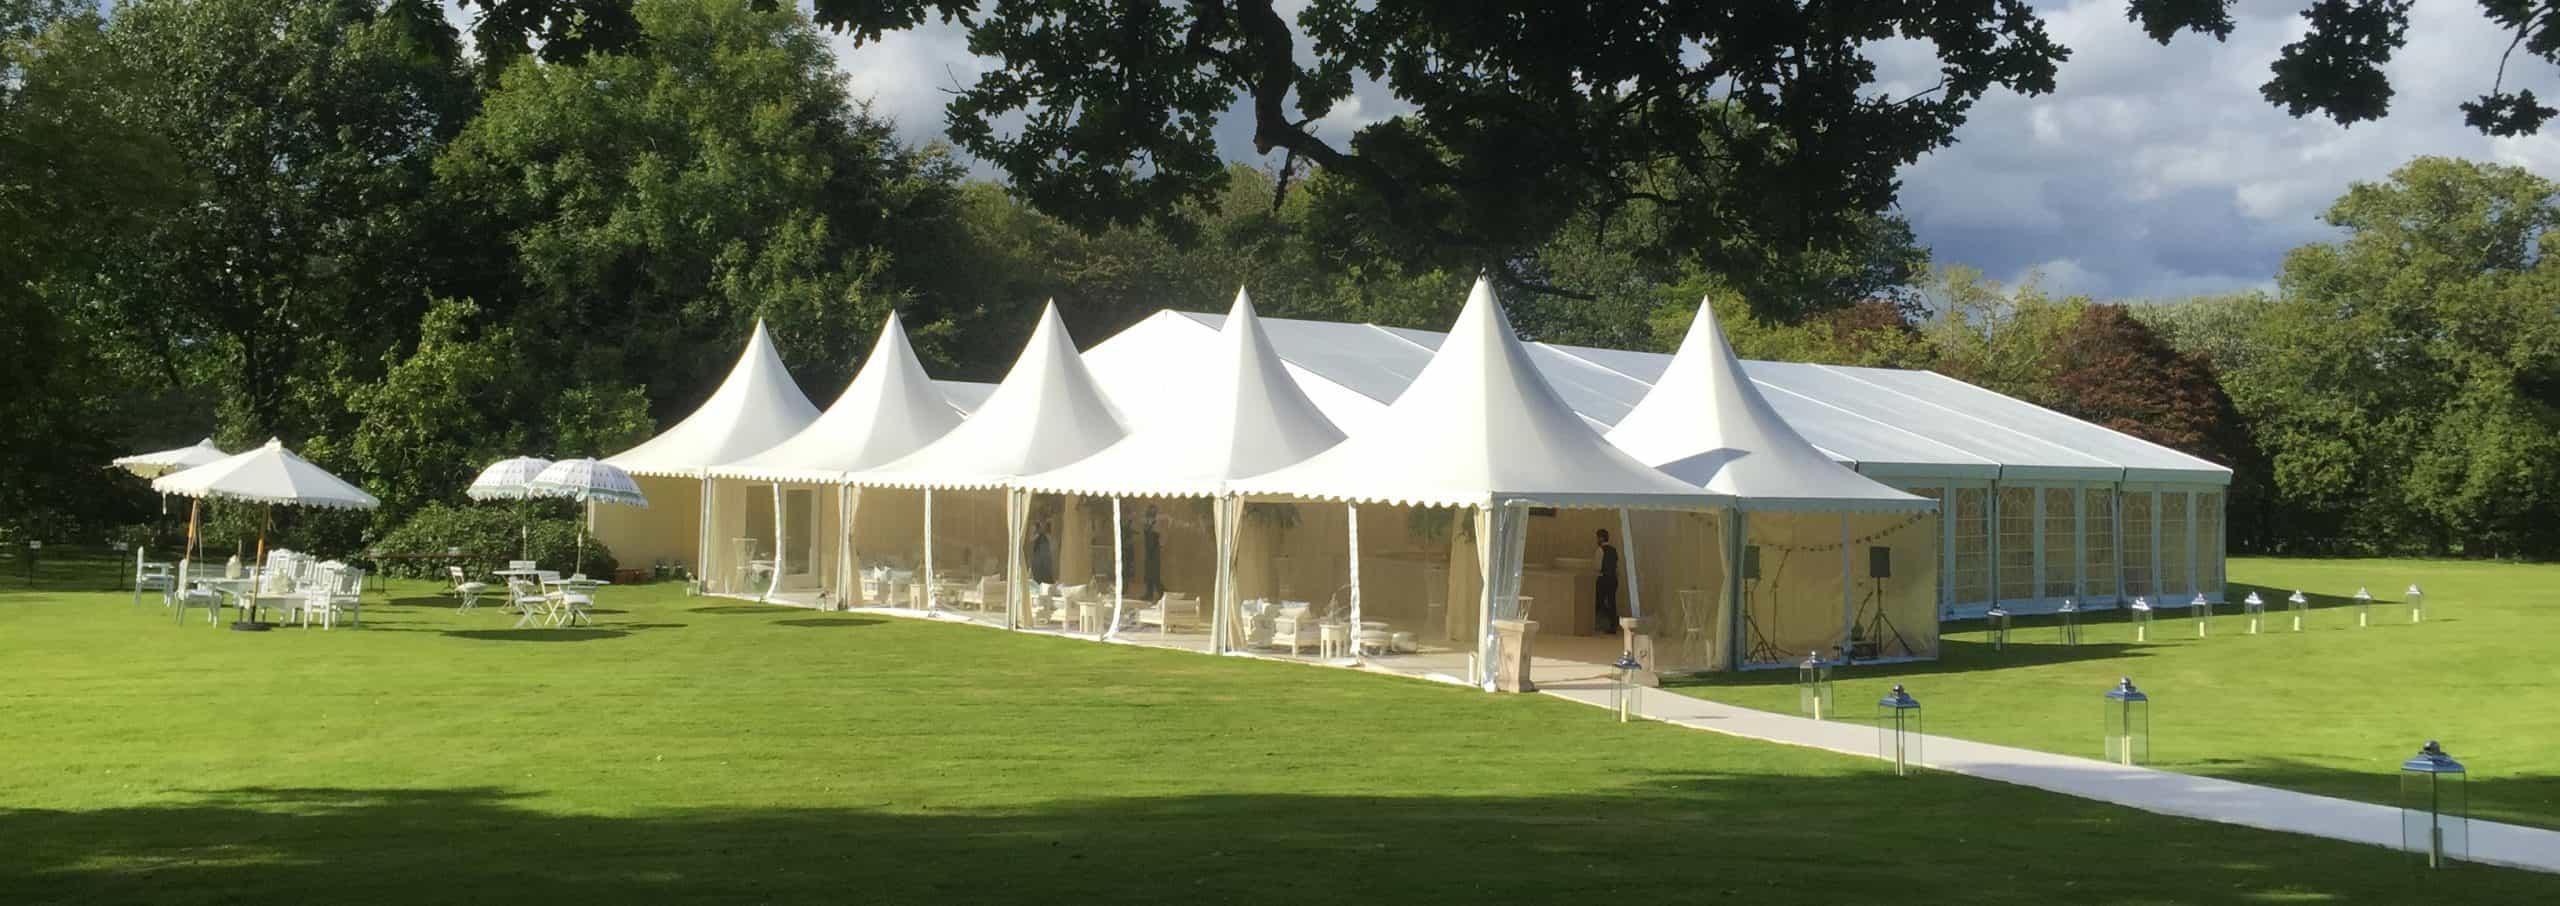 Wedding marquee hire: A large frame tent marquee with Chinese hat entrance and reception areas